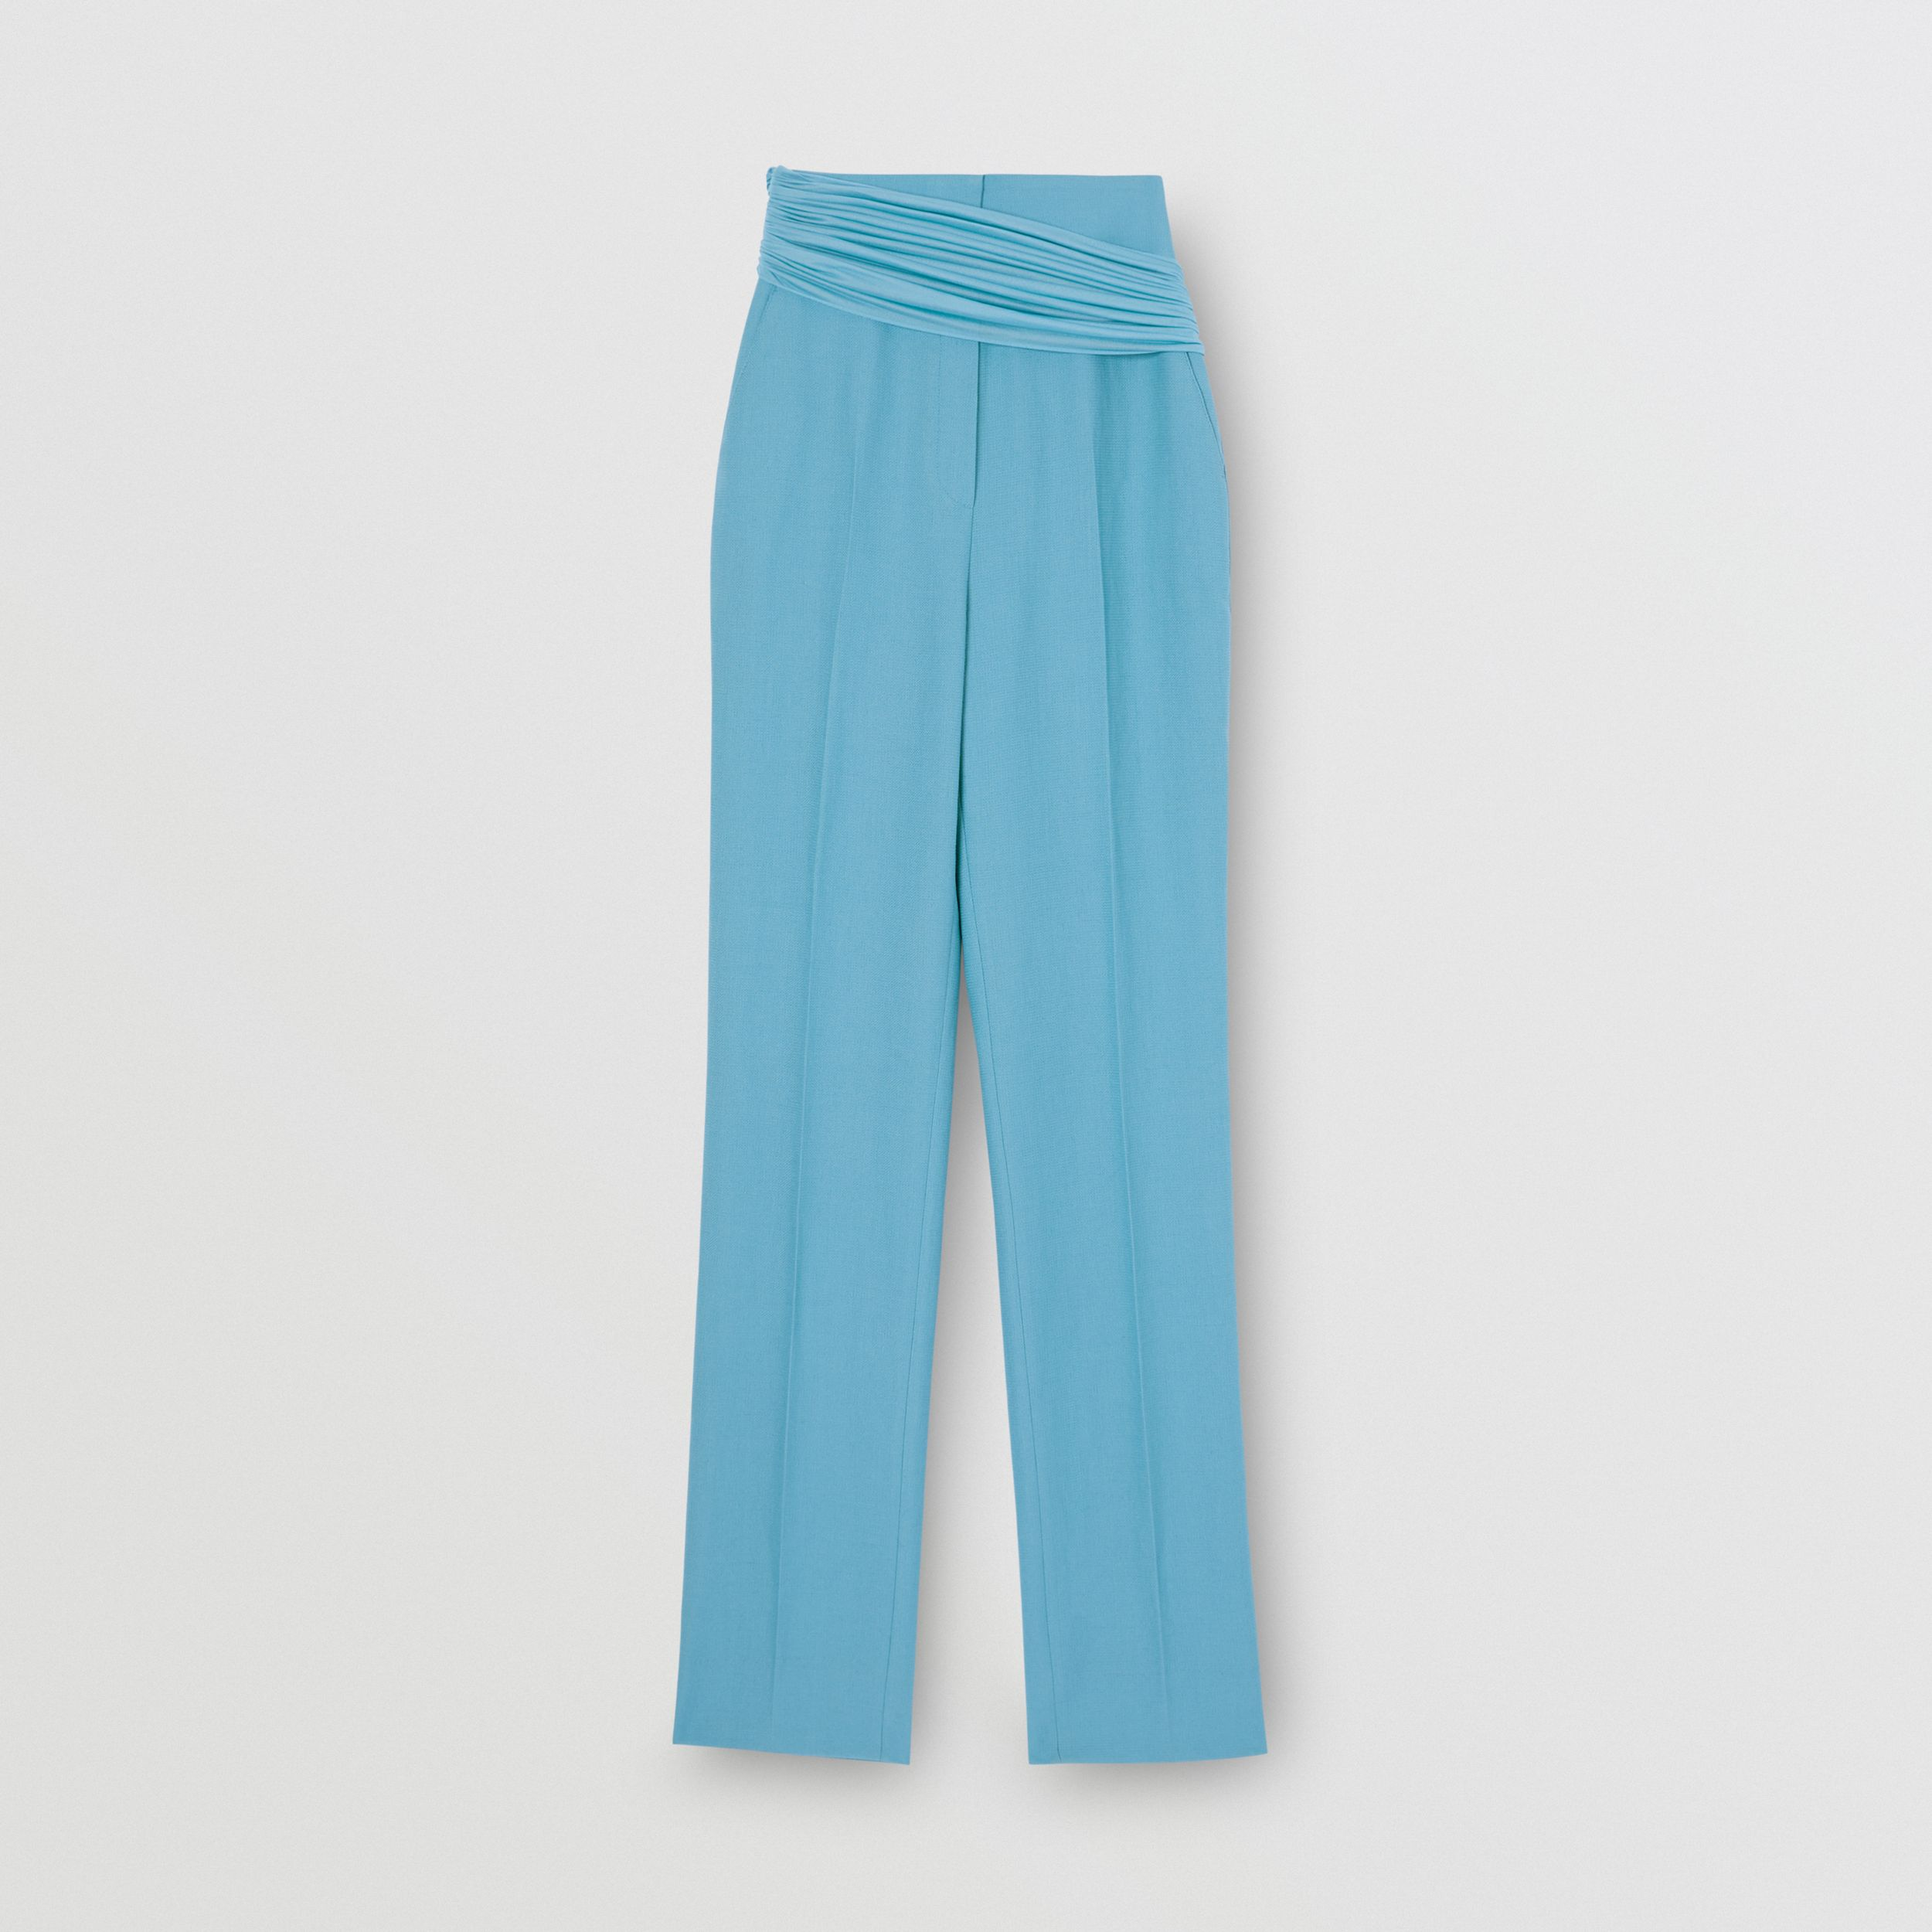 Jersey Sash Detail Wool Ramie Tailored Trousers in Blue Topaz - Women | Burberry - 4